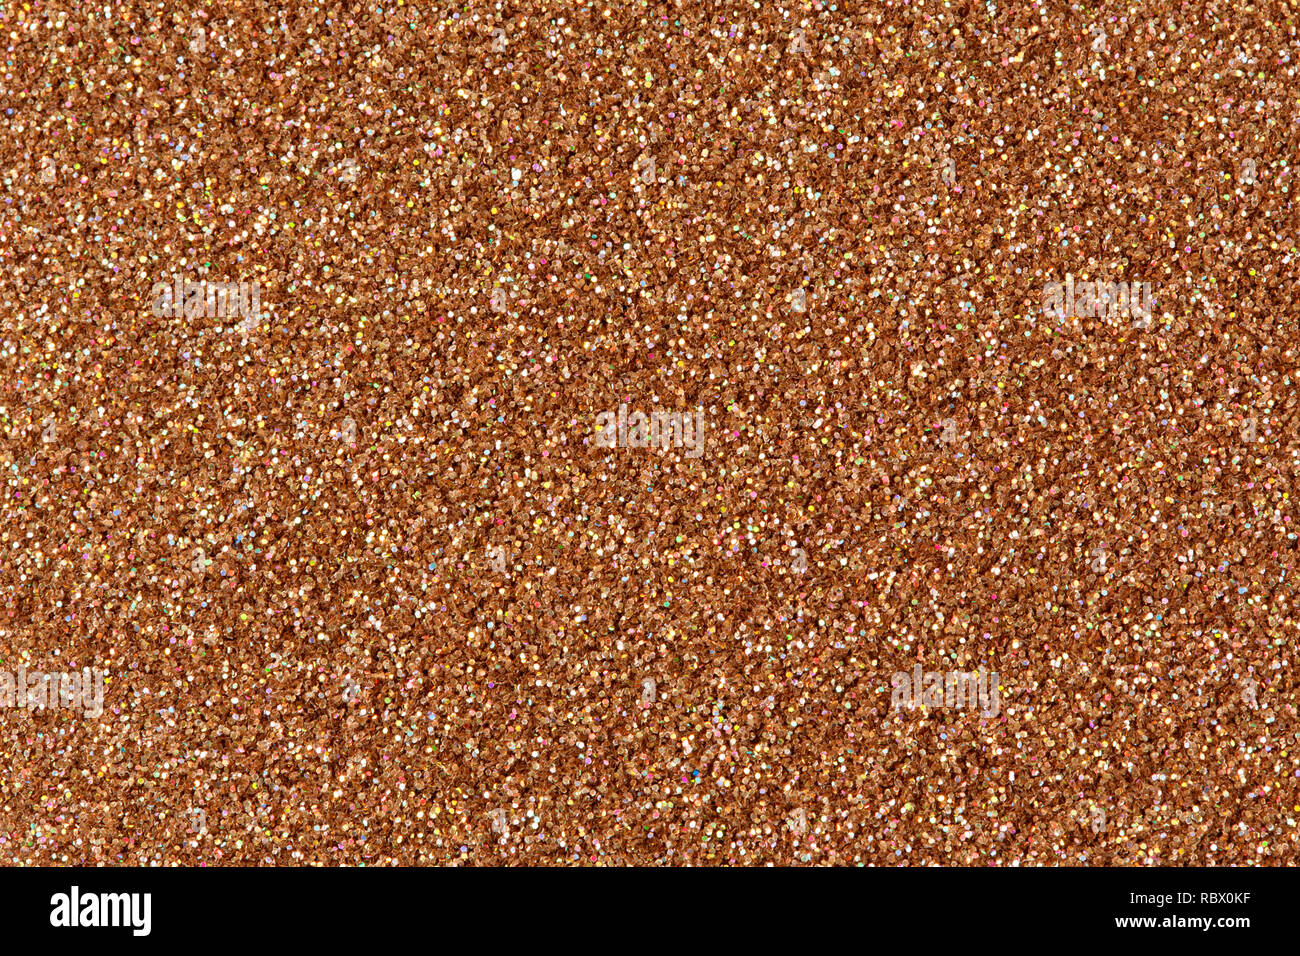 Brown glitter texture Christmas abstract background on macro - Stock Image